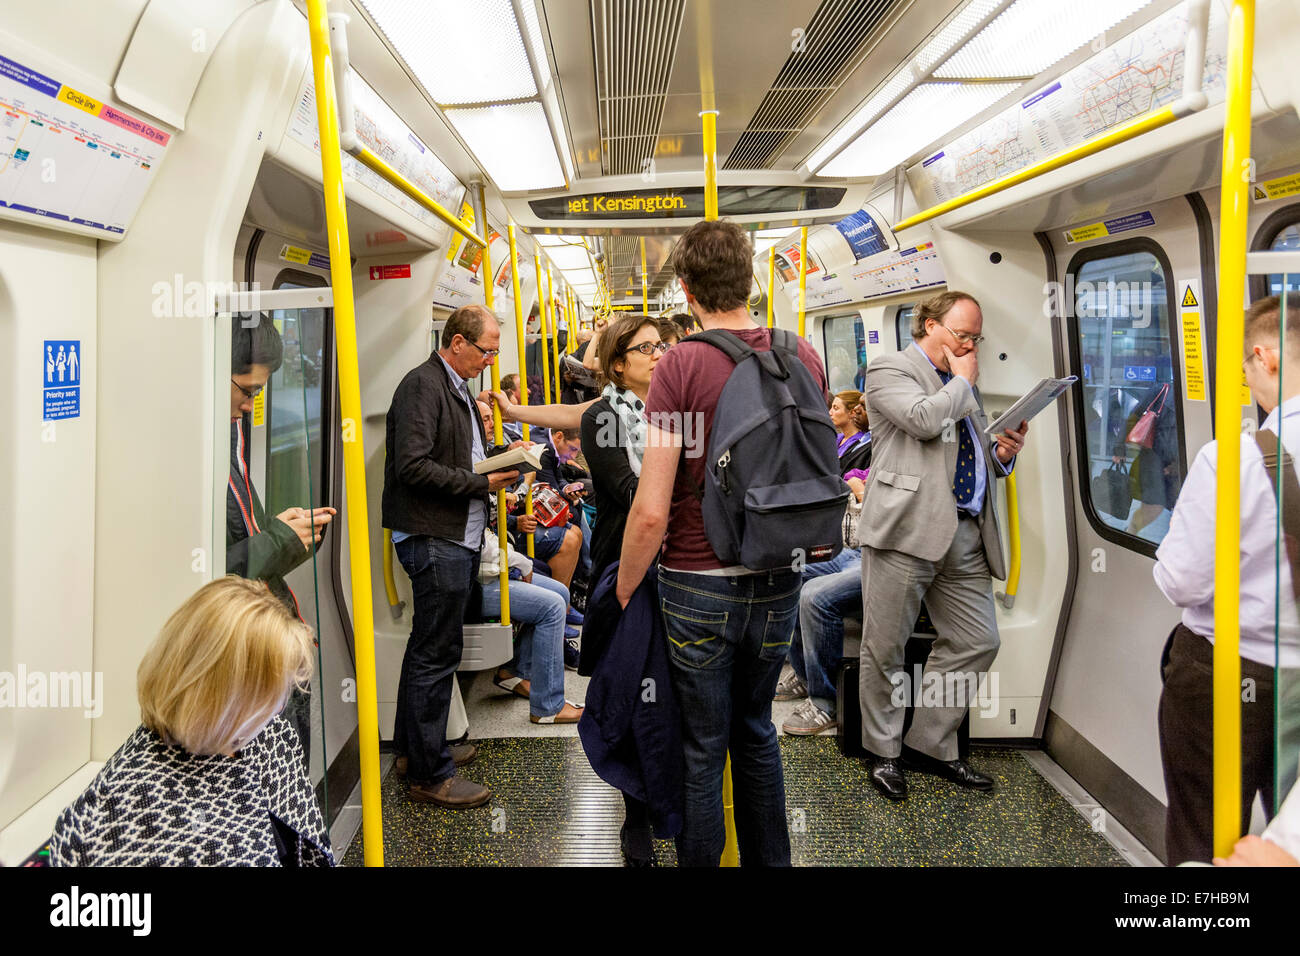 Un train du métro de Londres, Londres, Angleterre Photo Stock